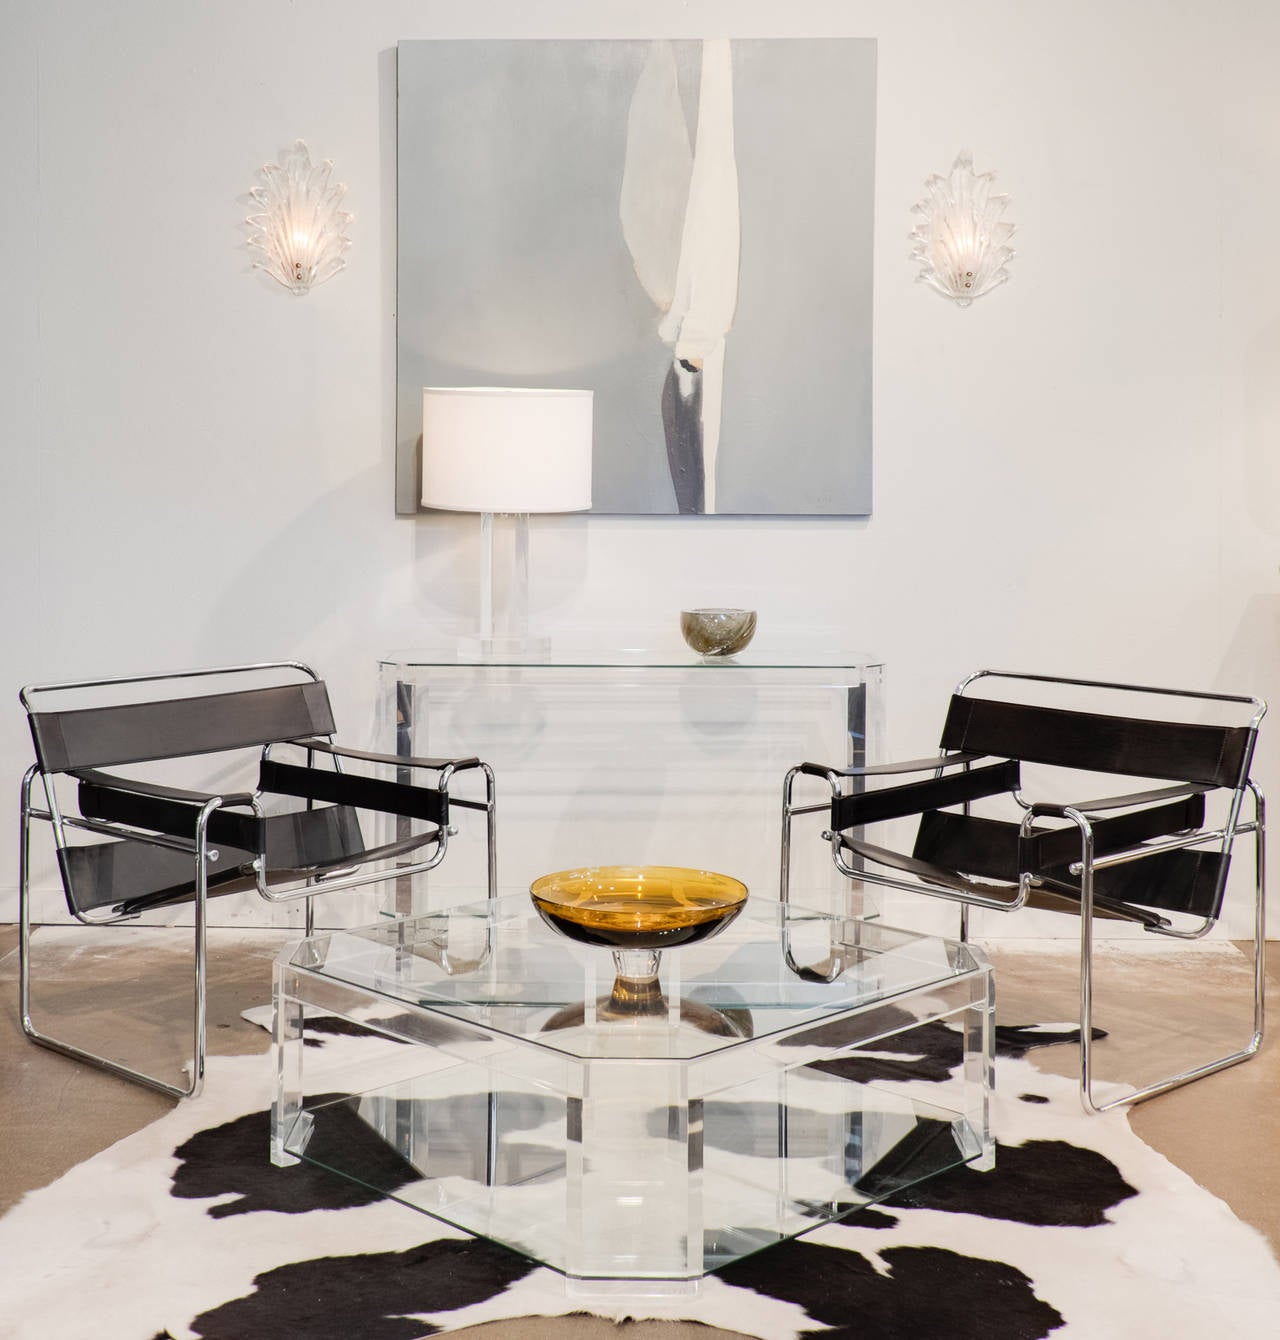 Vintage pair of Wassily chairs, designed by Marcel Breuer, with stitched black leather and a chromed steel tube frame, all in excellent condition.  Marcel Breuer was an apprentice at the Bauhaus in 1925 when he conceived the first tubular steel